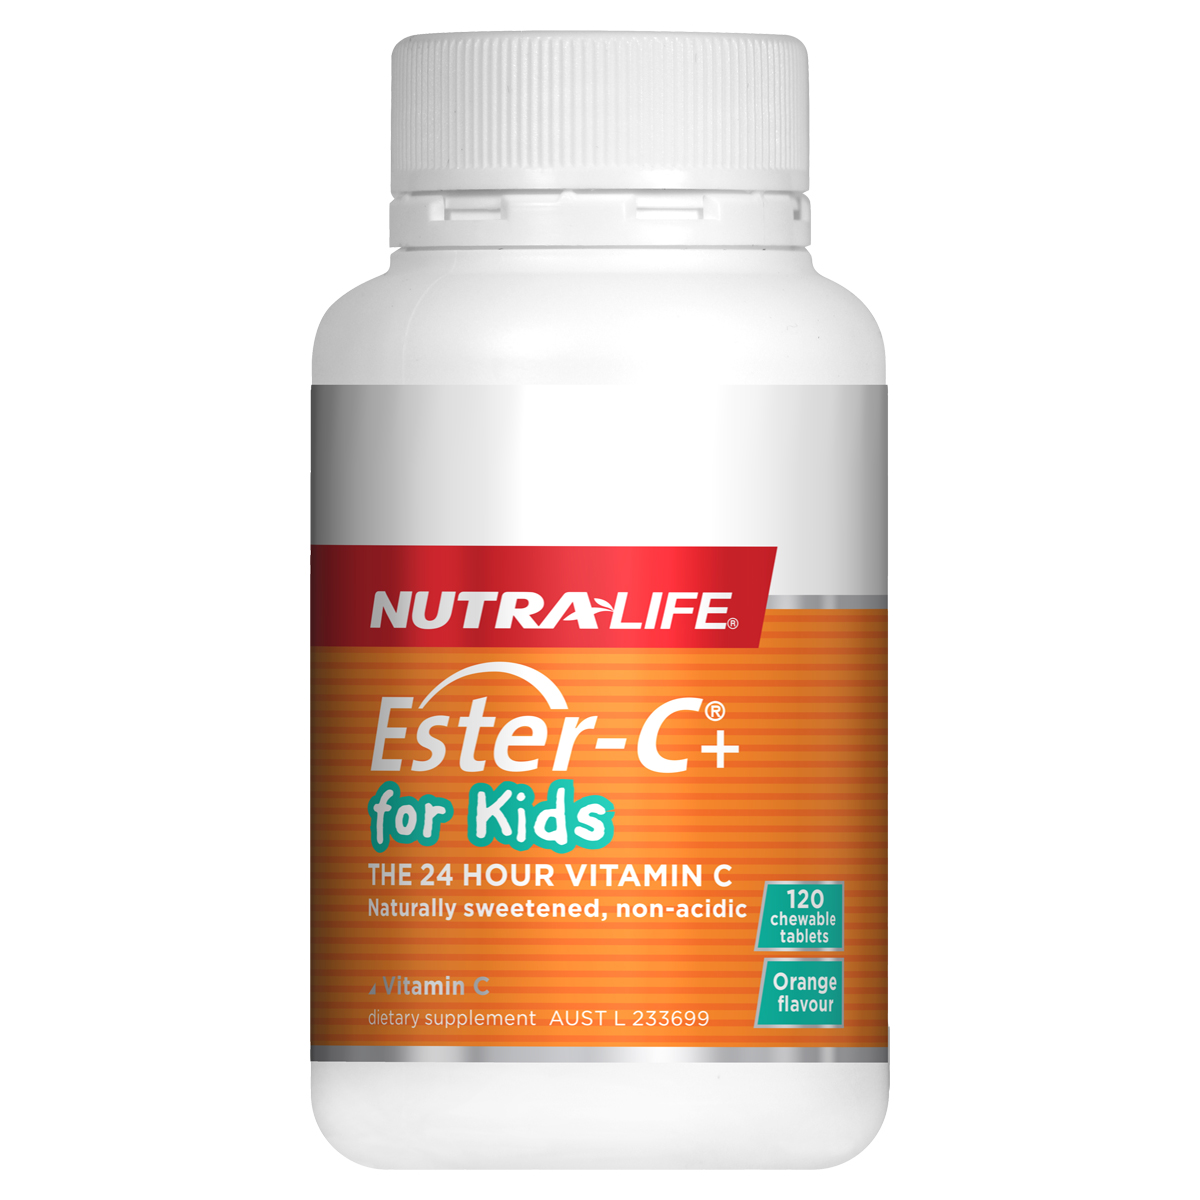 Buy Nutra-Life Ester C For Kids Online - 60 Chews and 120 Chews